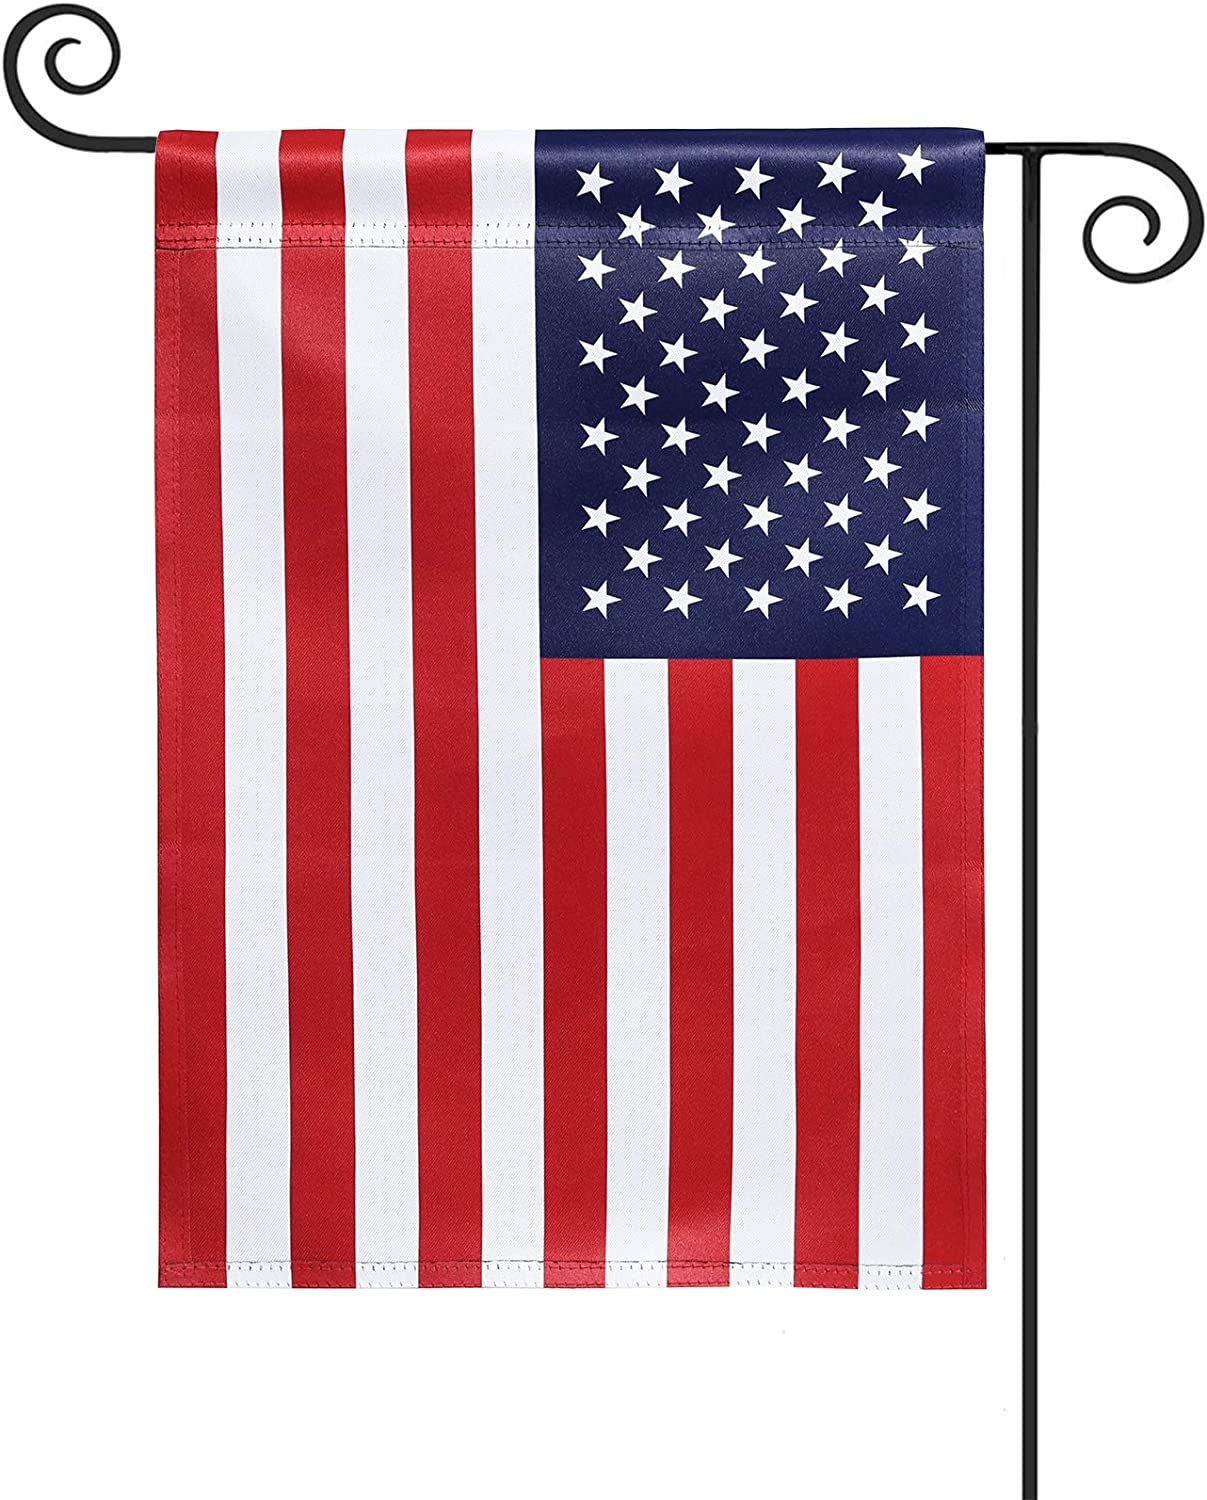 KPP American Garden Flag, 12x18 Inch 2020 USA Flag - Outdoor Yard Flag, Vertical Double Sided, Double Stitched(12 x 18 inch)